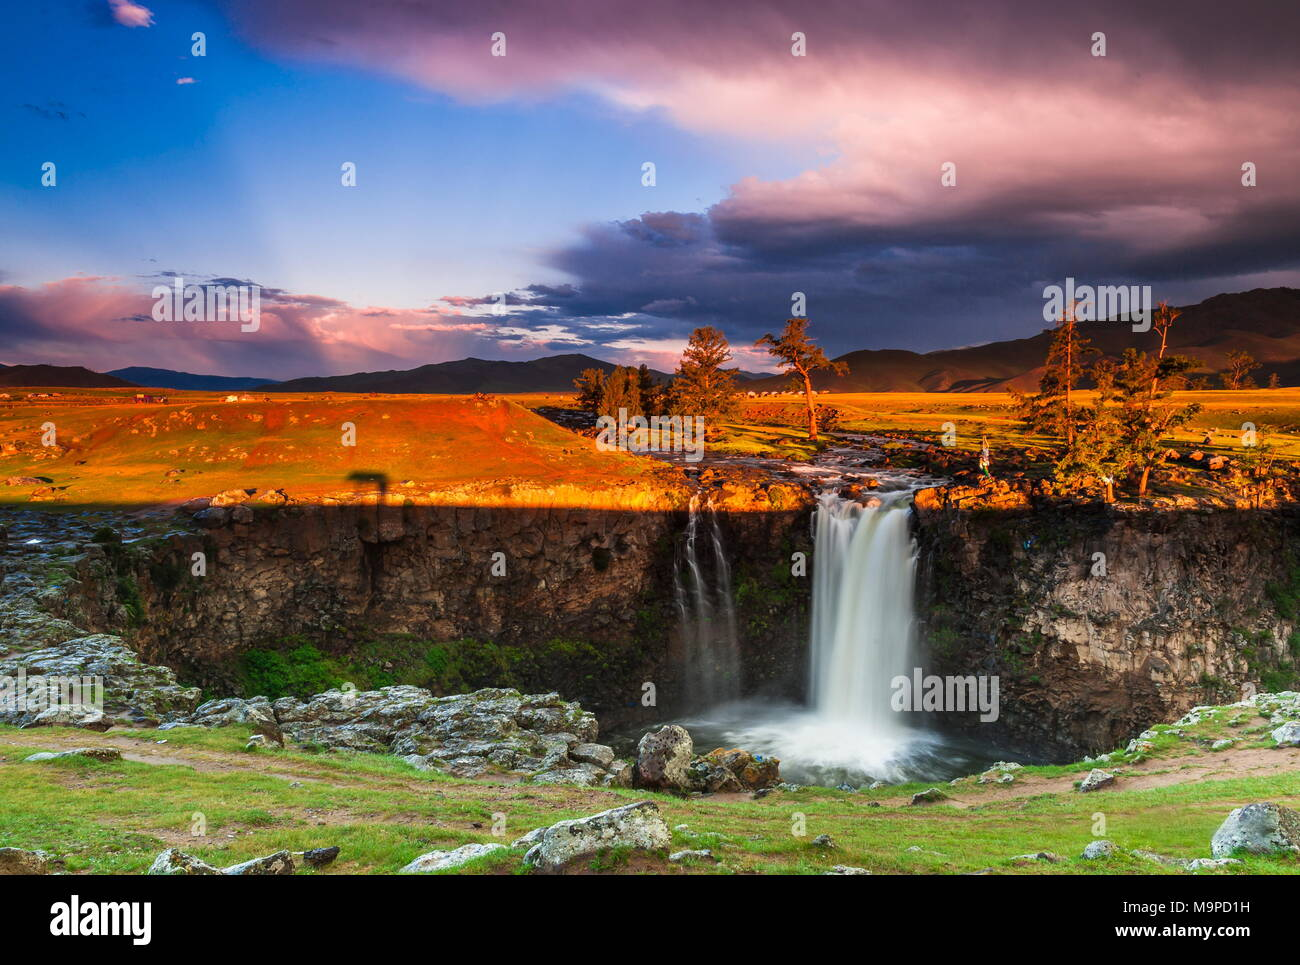 Orkhon waterfalls in dramatic sunlight, Mongolia - Stock Image